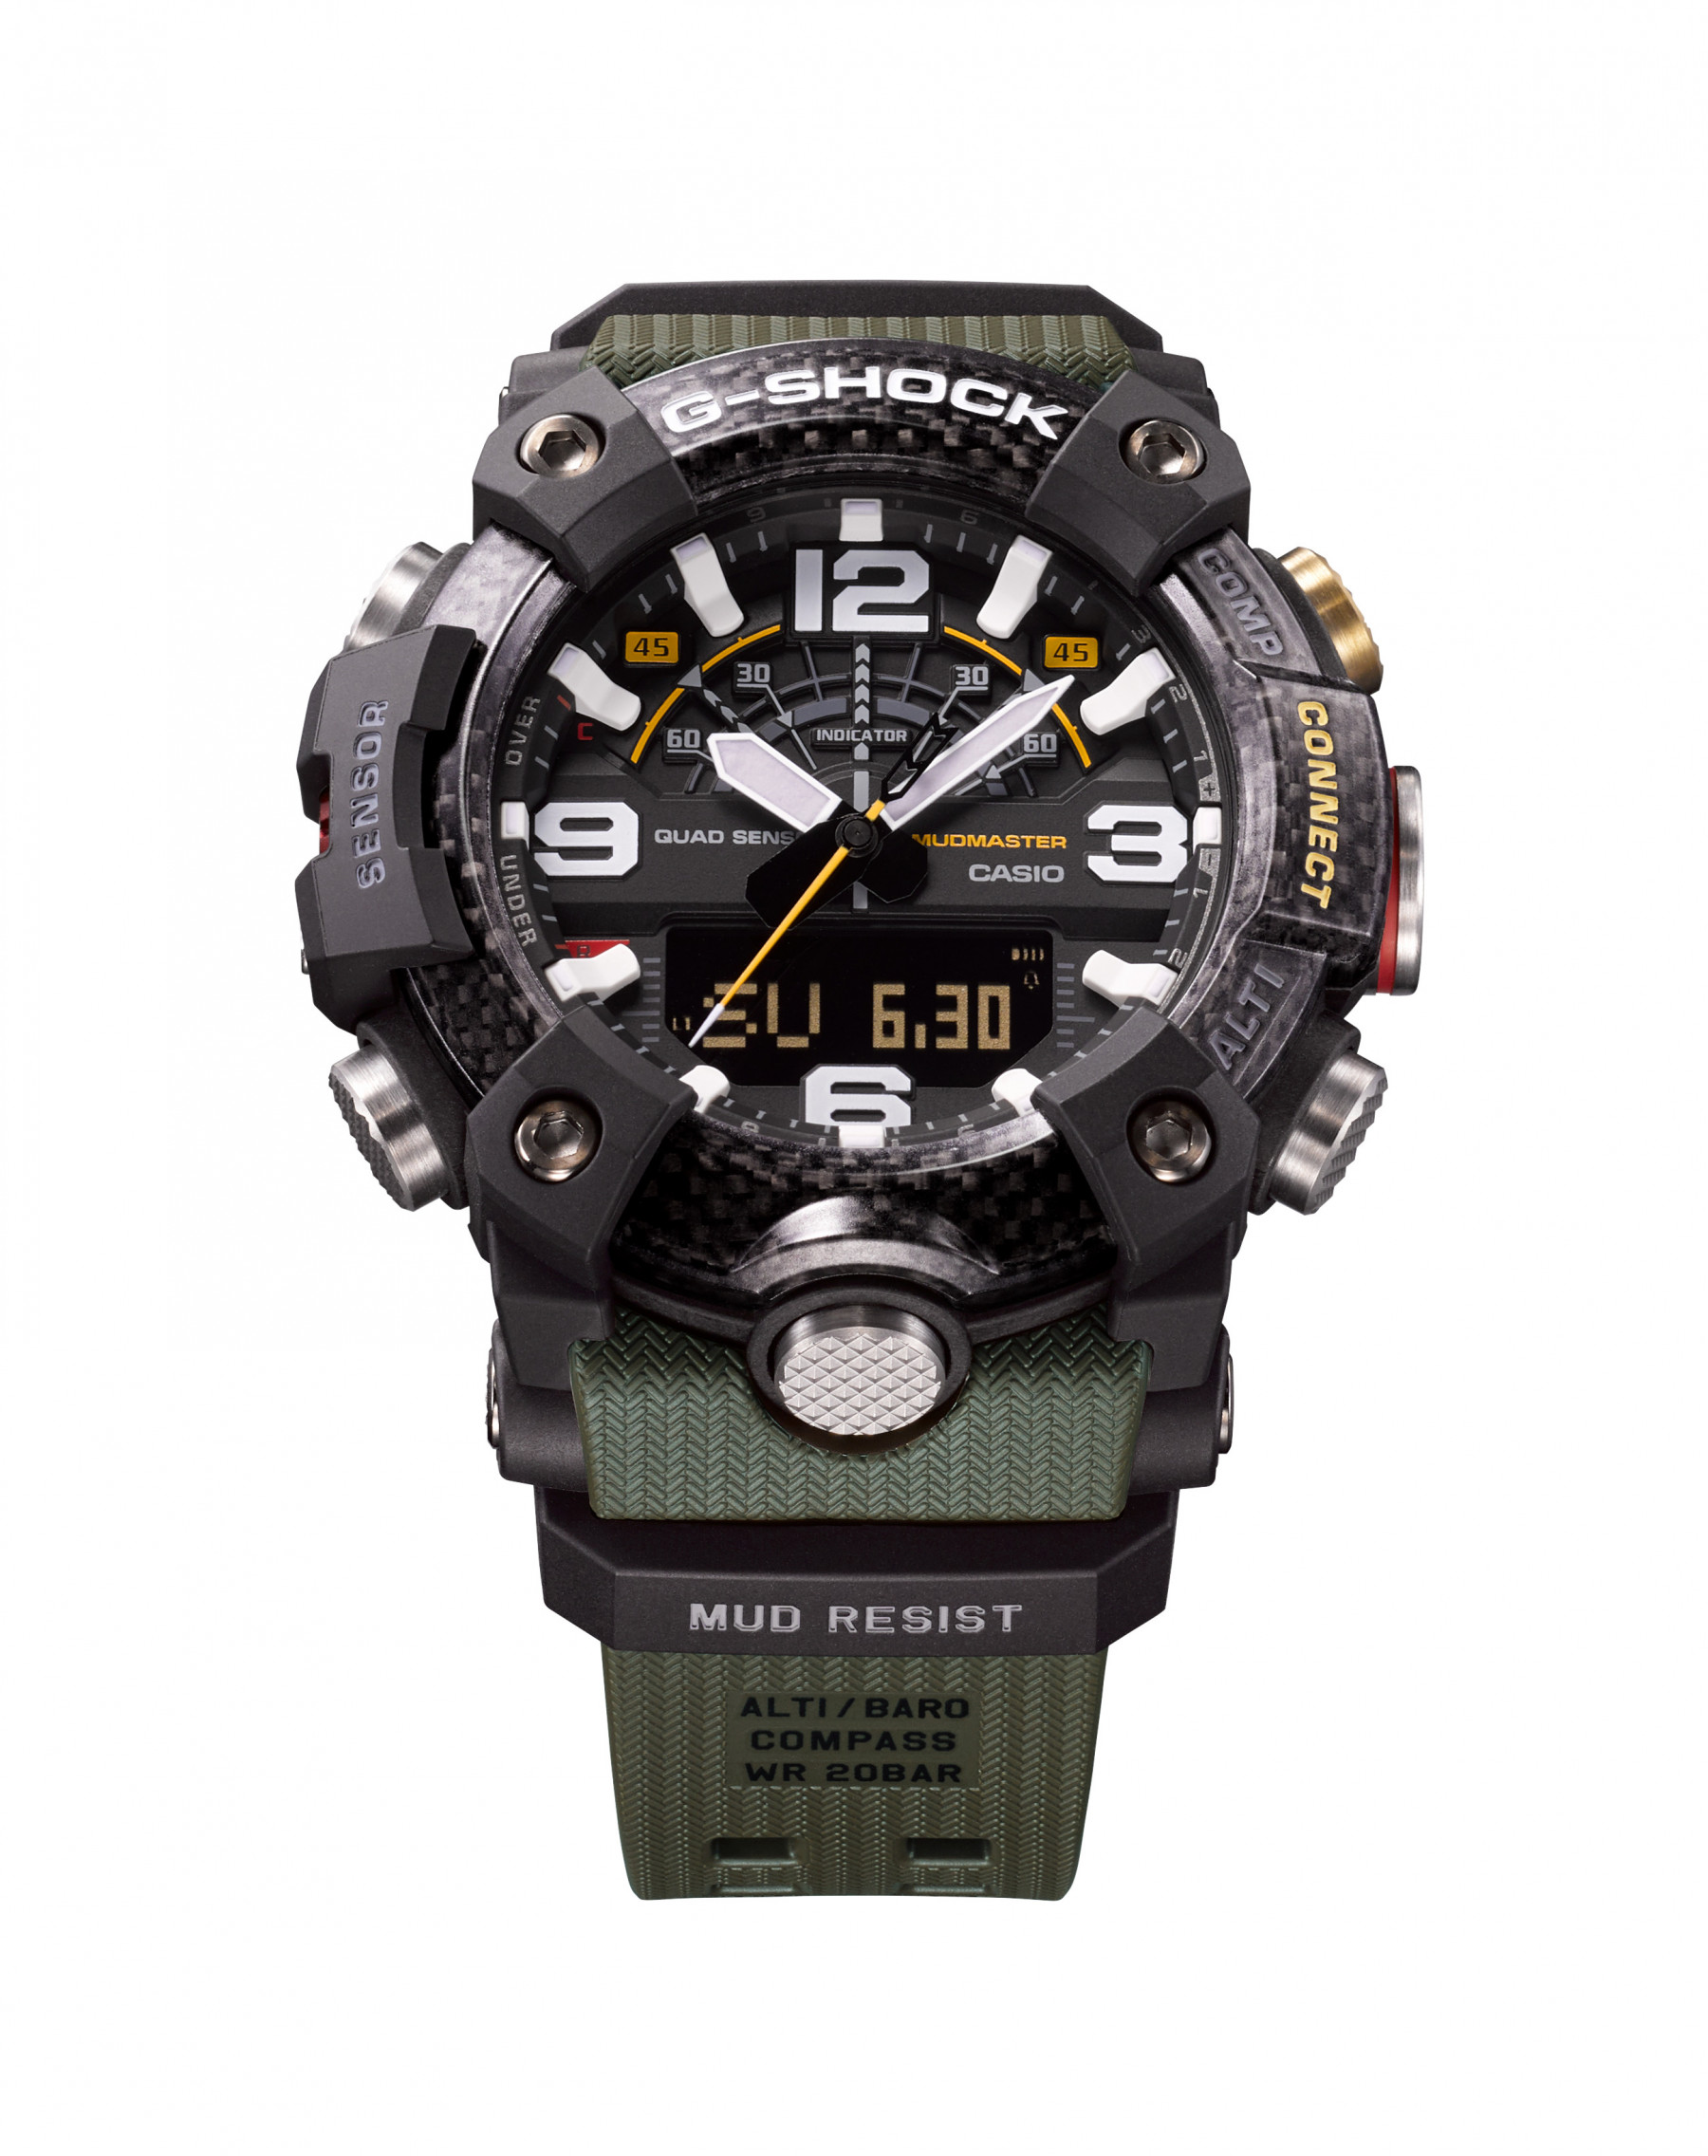 G-Shock Carbon Core Green and Black Mudmaster Watch angle view